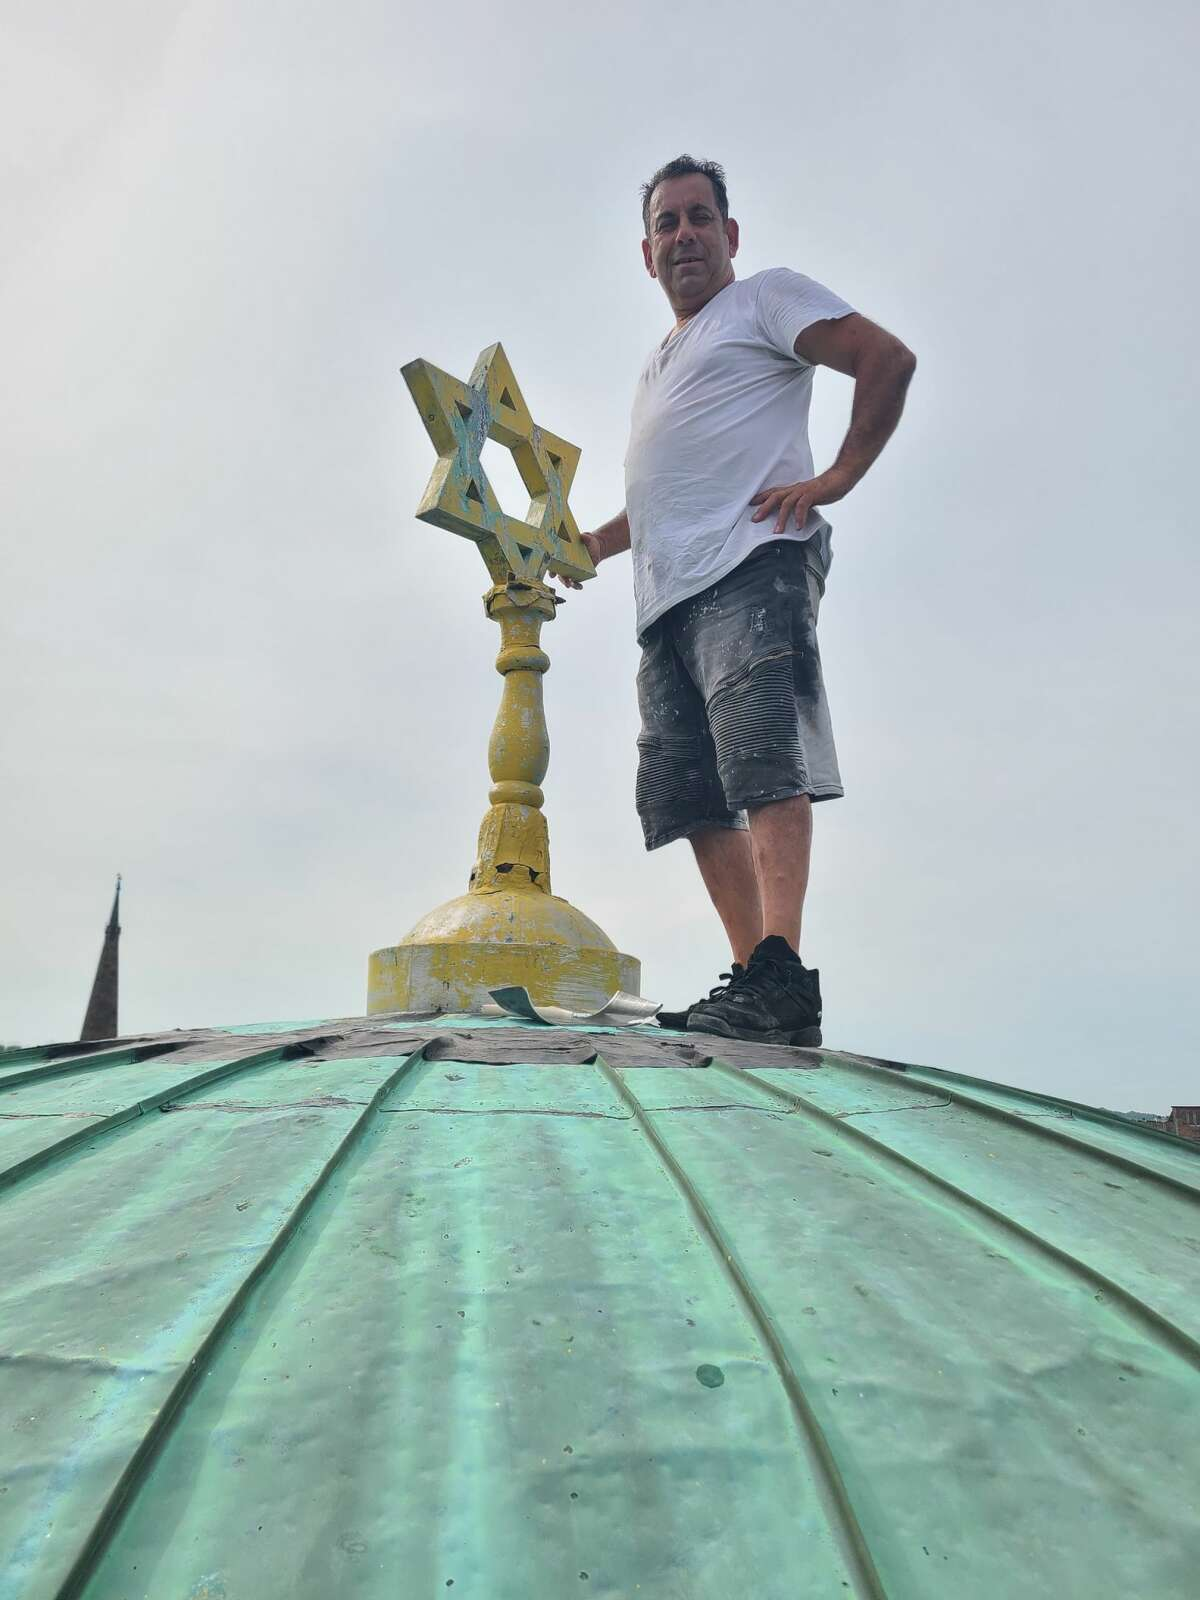 A lightning bolt toppled Beth Tephilah synagogue's rusty Star of David. Construction company owner Nick Mamone repaired the leaking roof then put the Star of David, now repainted it's original gold color, atop the dome.